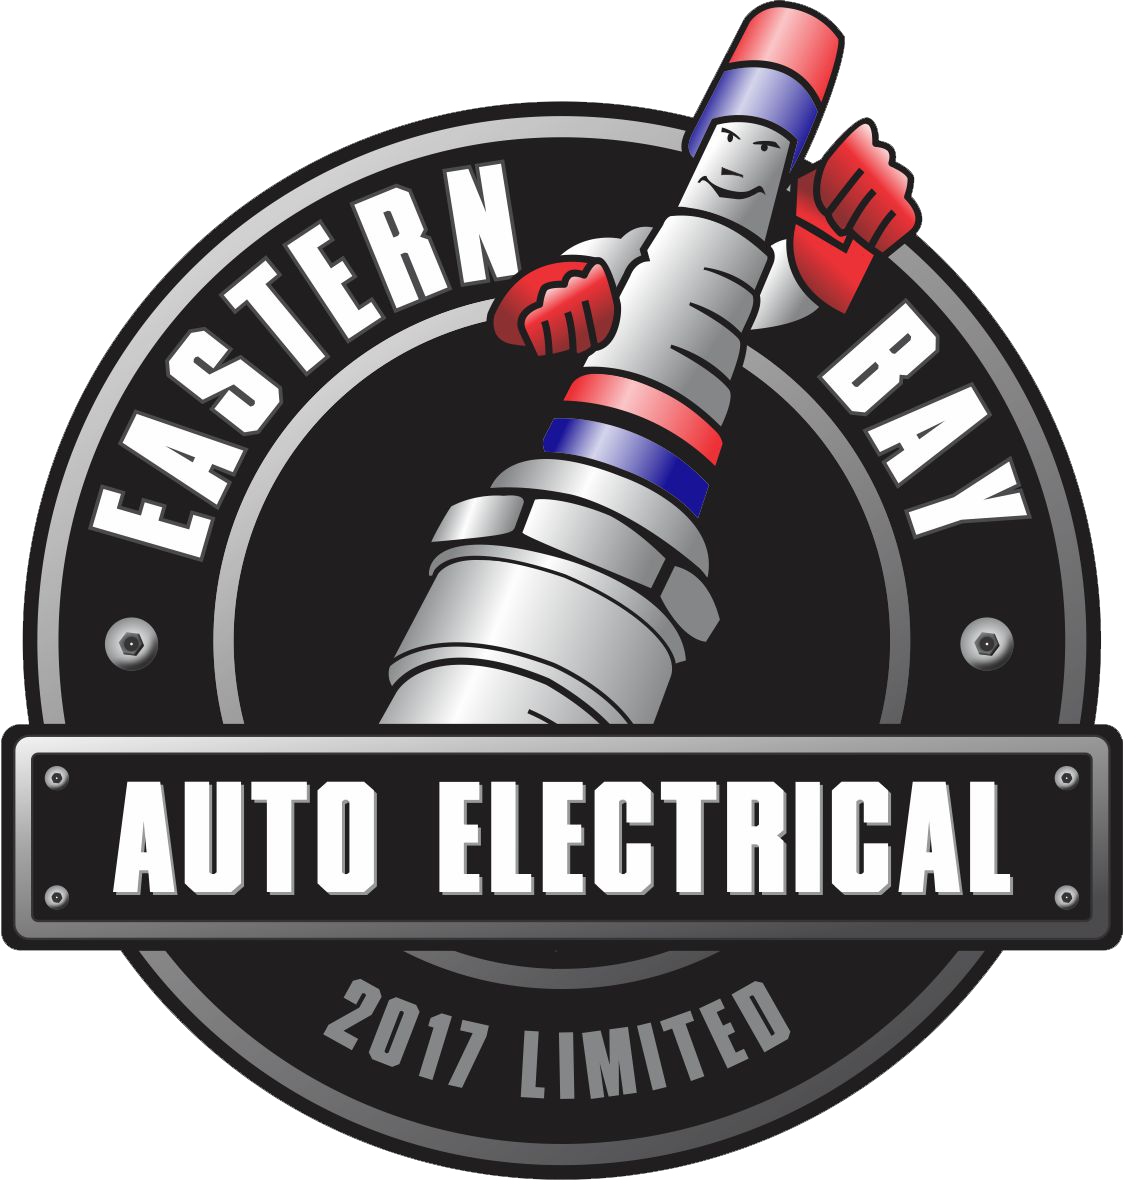 Eastern Bay Auto Electrical